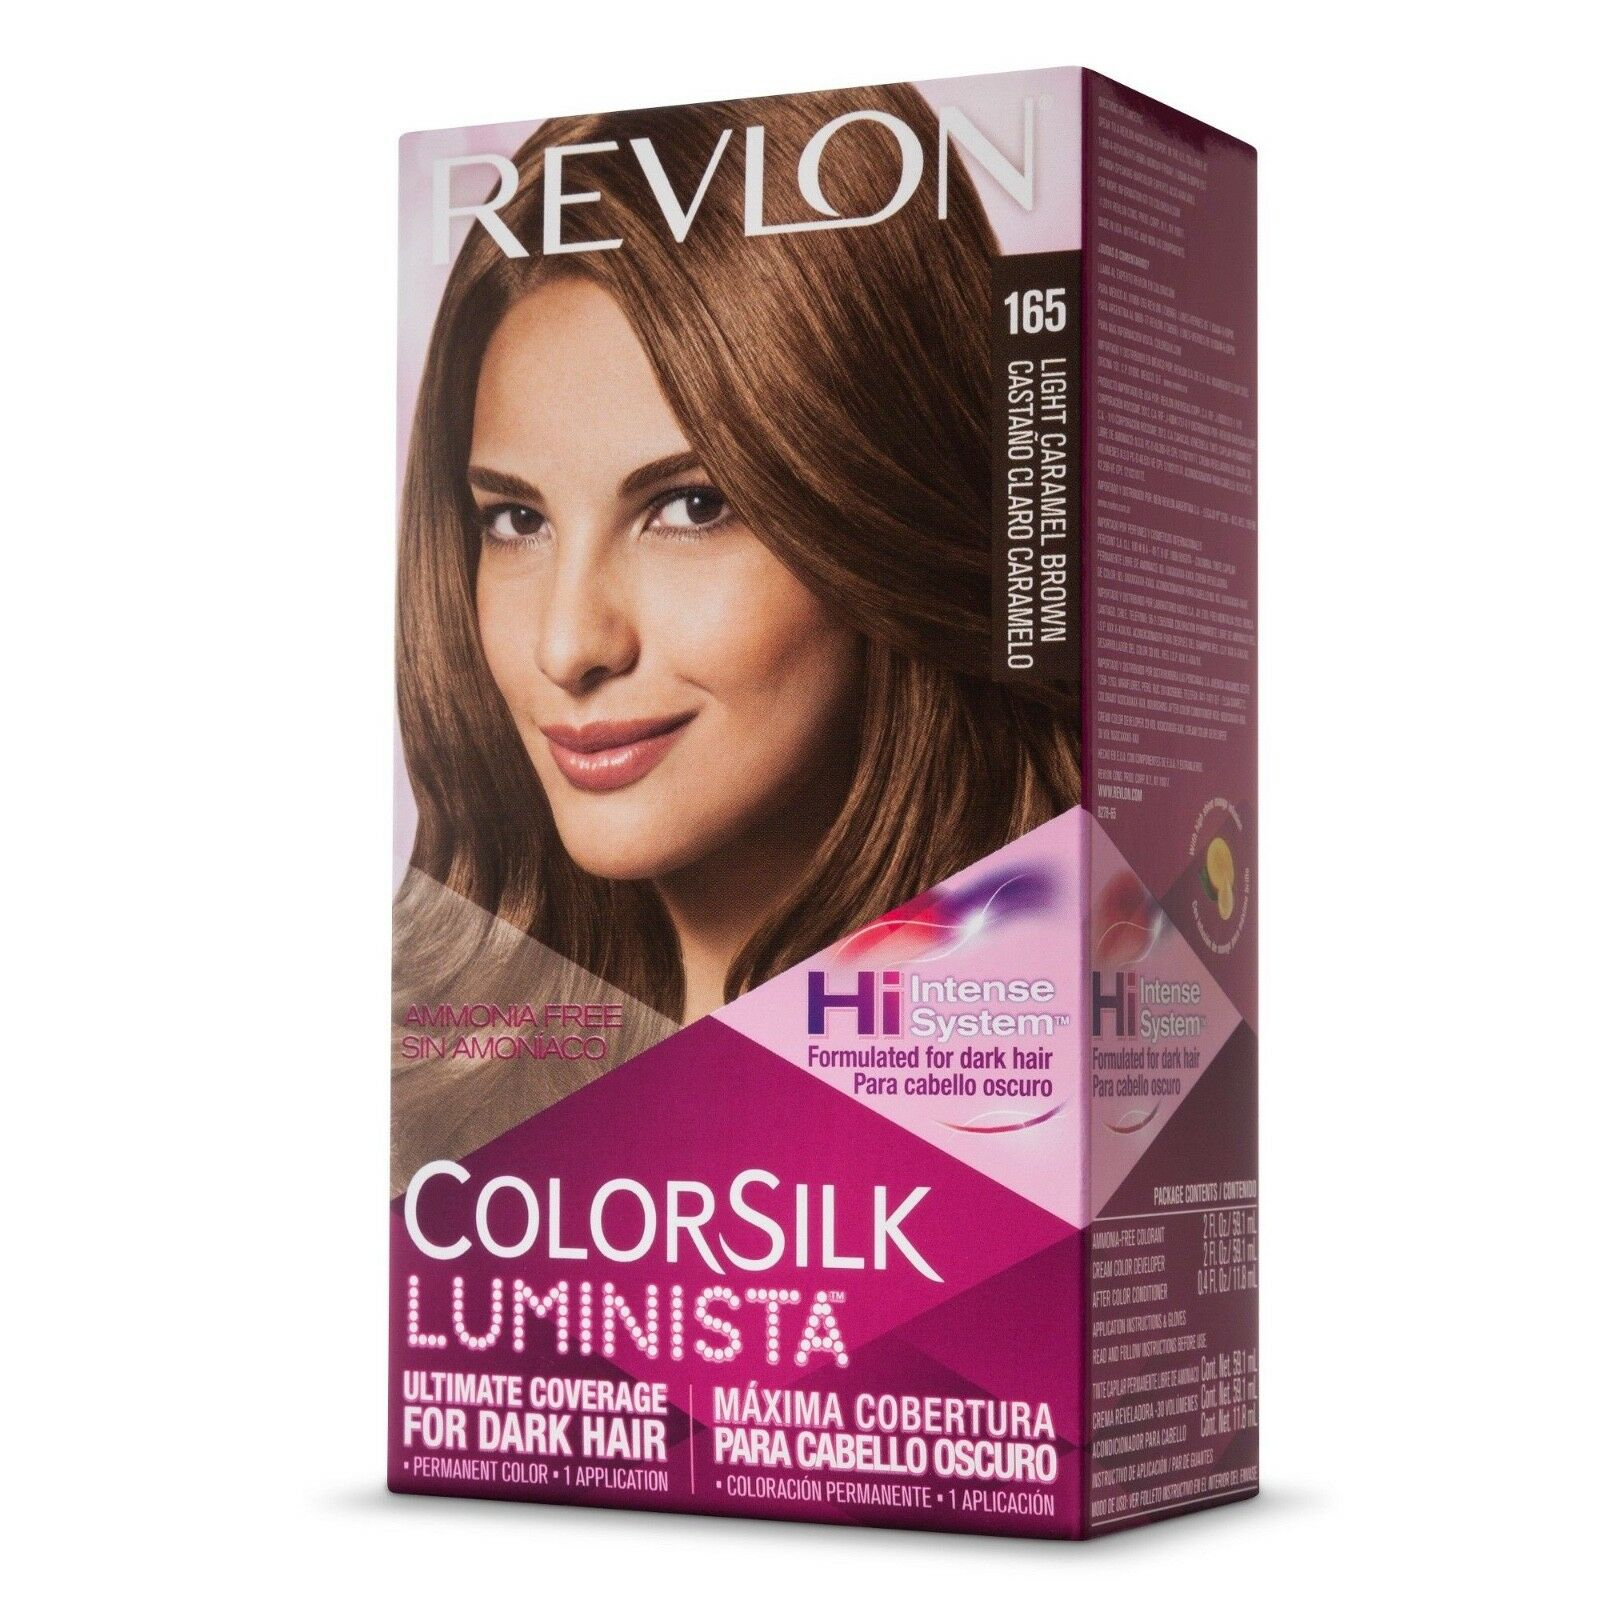 Revlon Colorsilk Luminista Hair Color 165 Light Caramel Brown 1 Ea